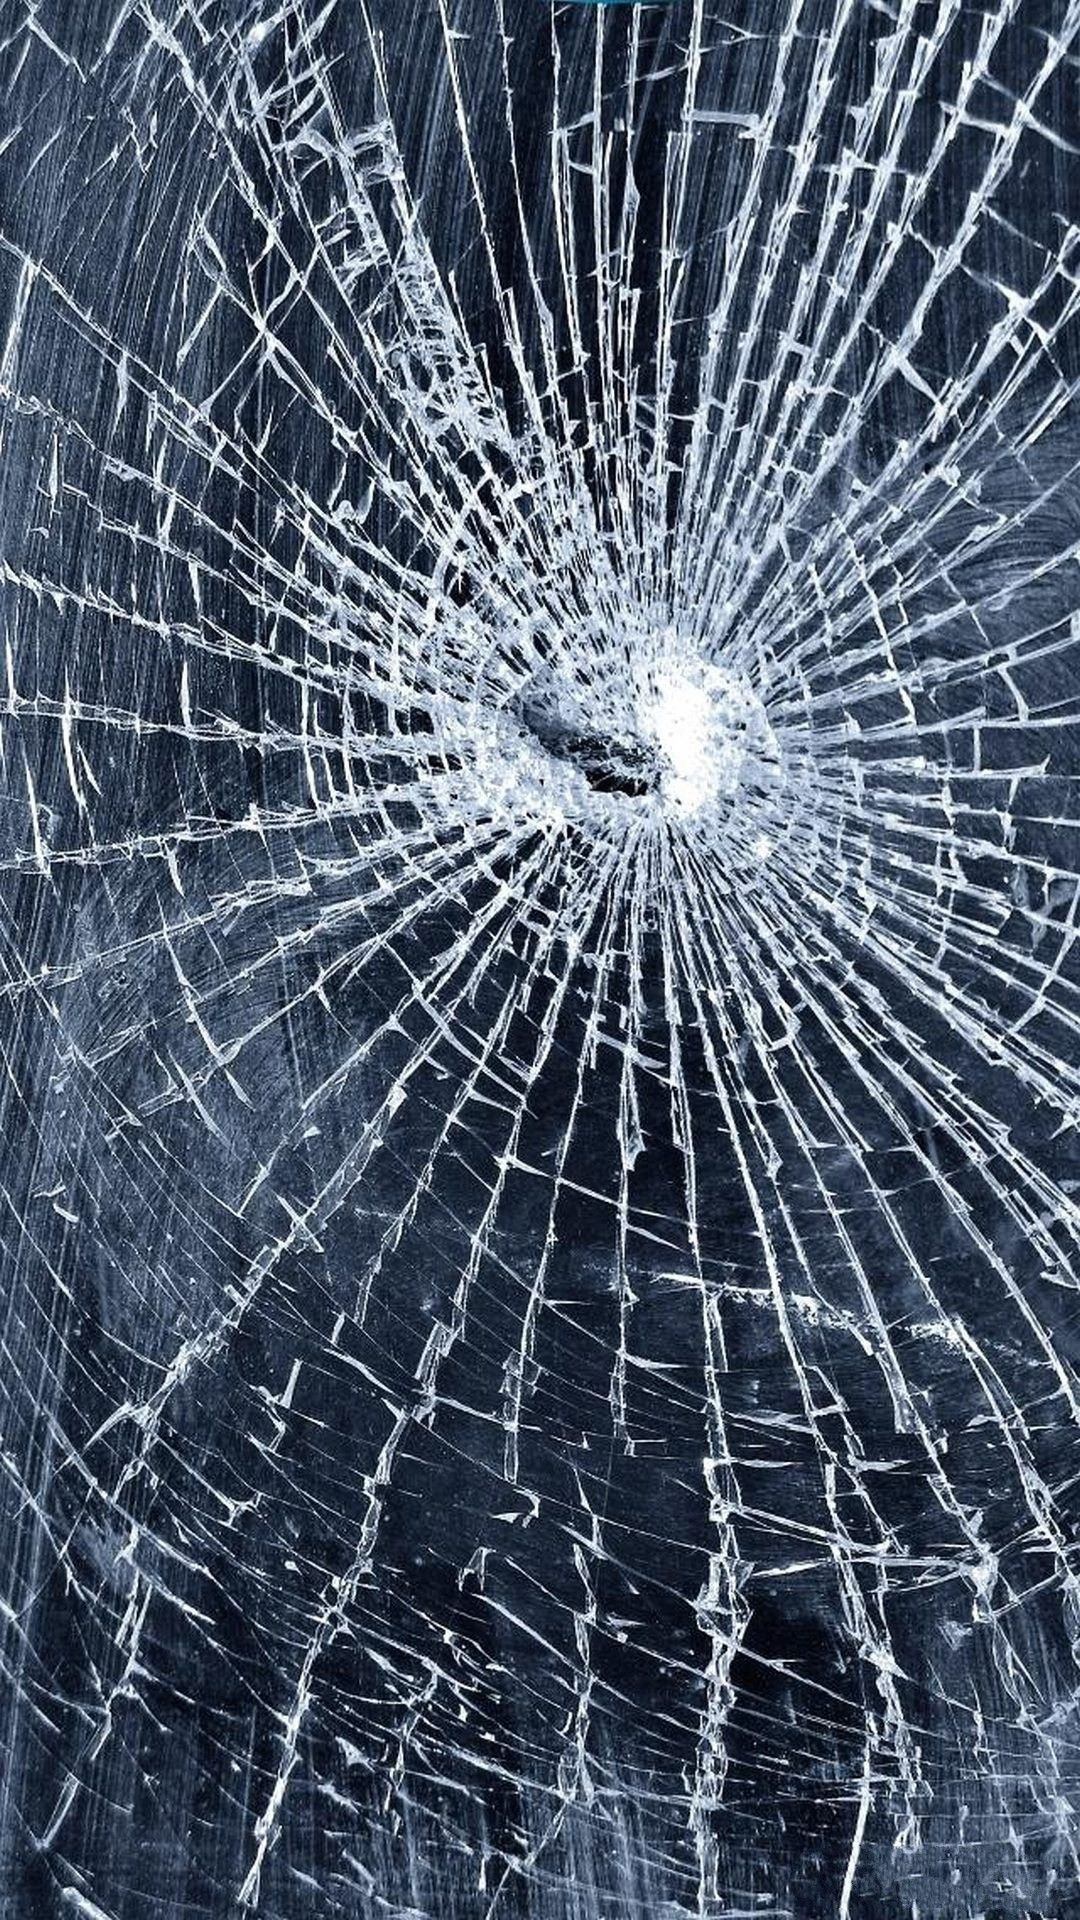 10 top cracked screen wallpaper android full hd 1080p for pc background